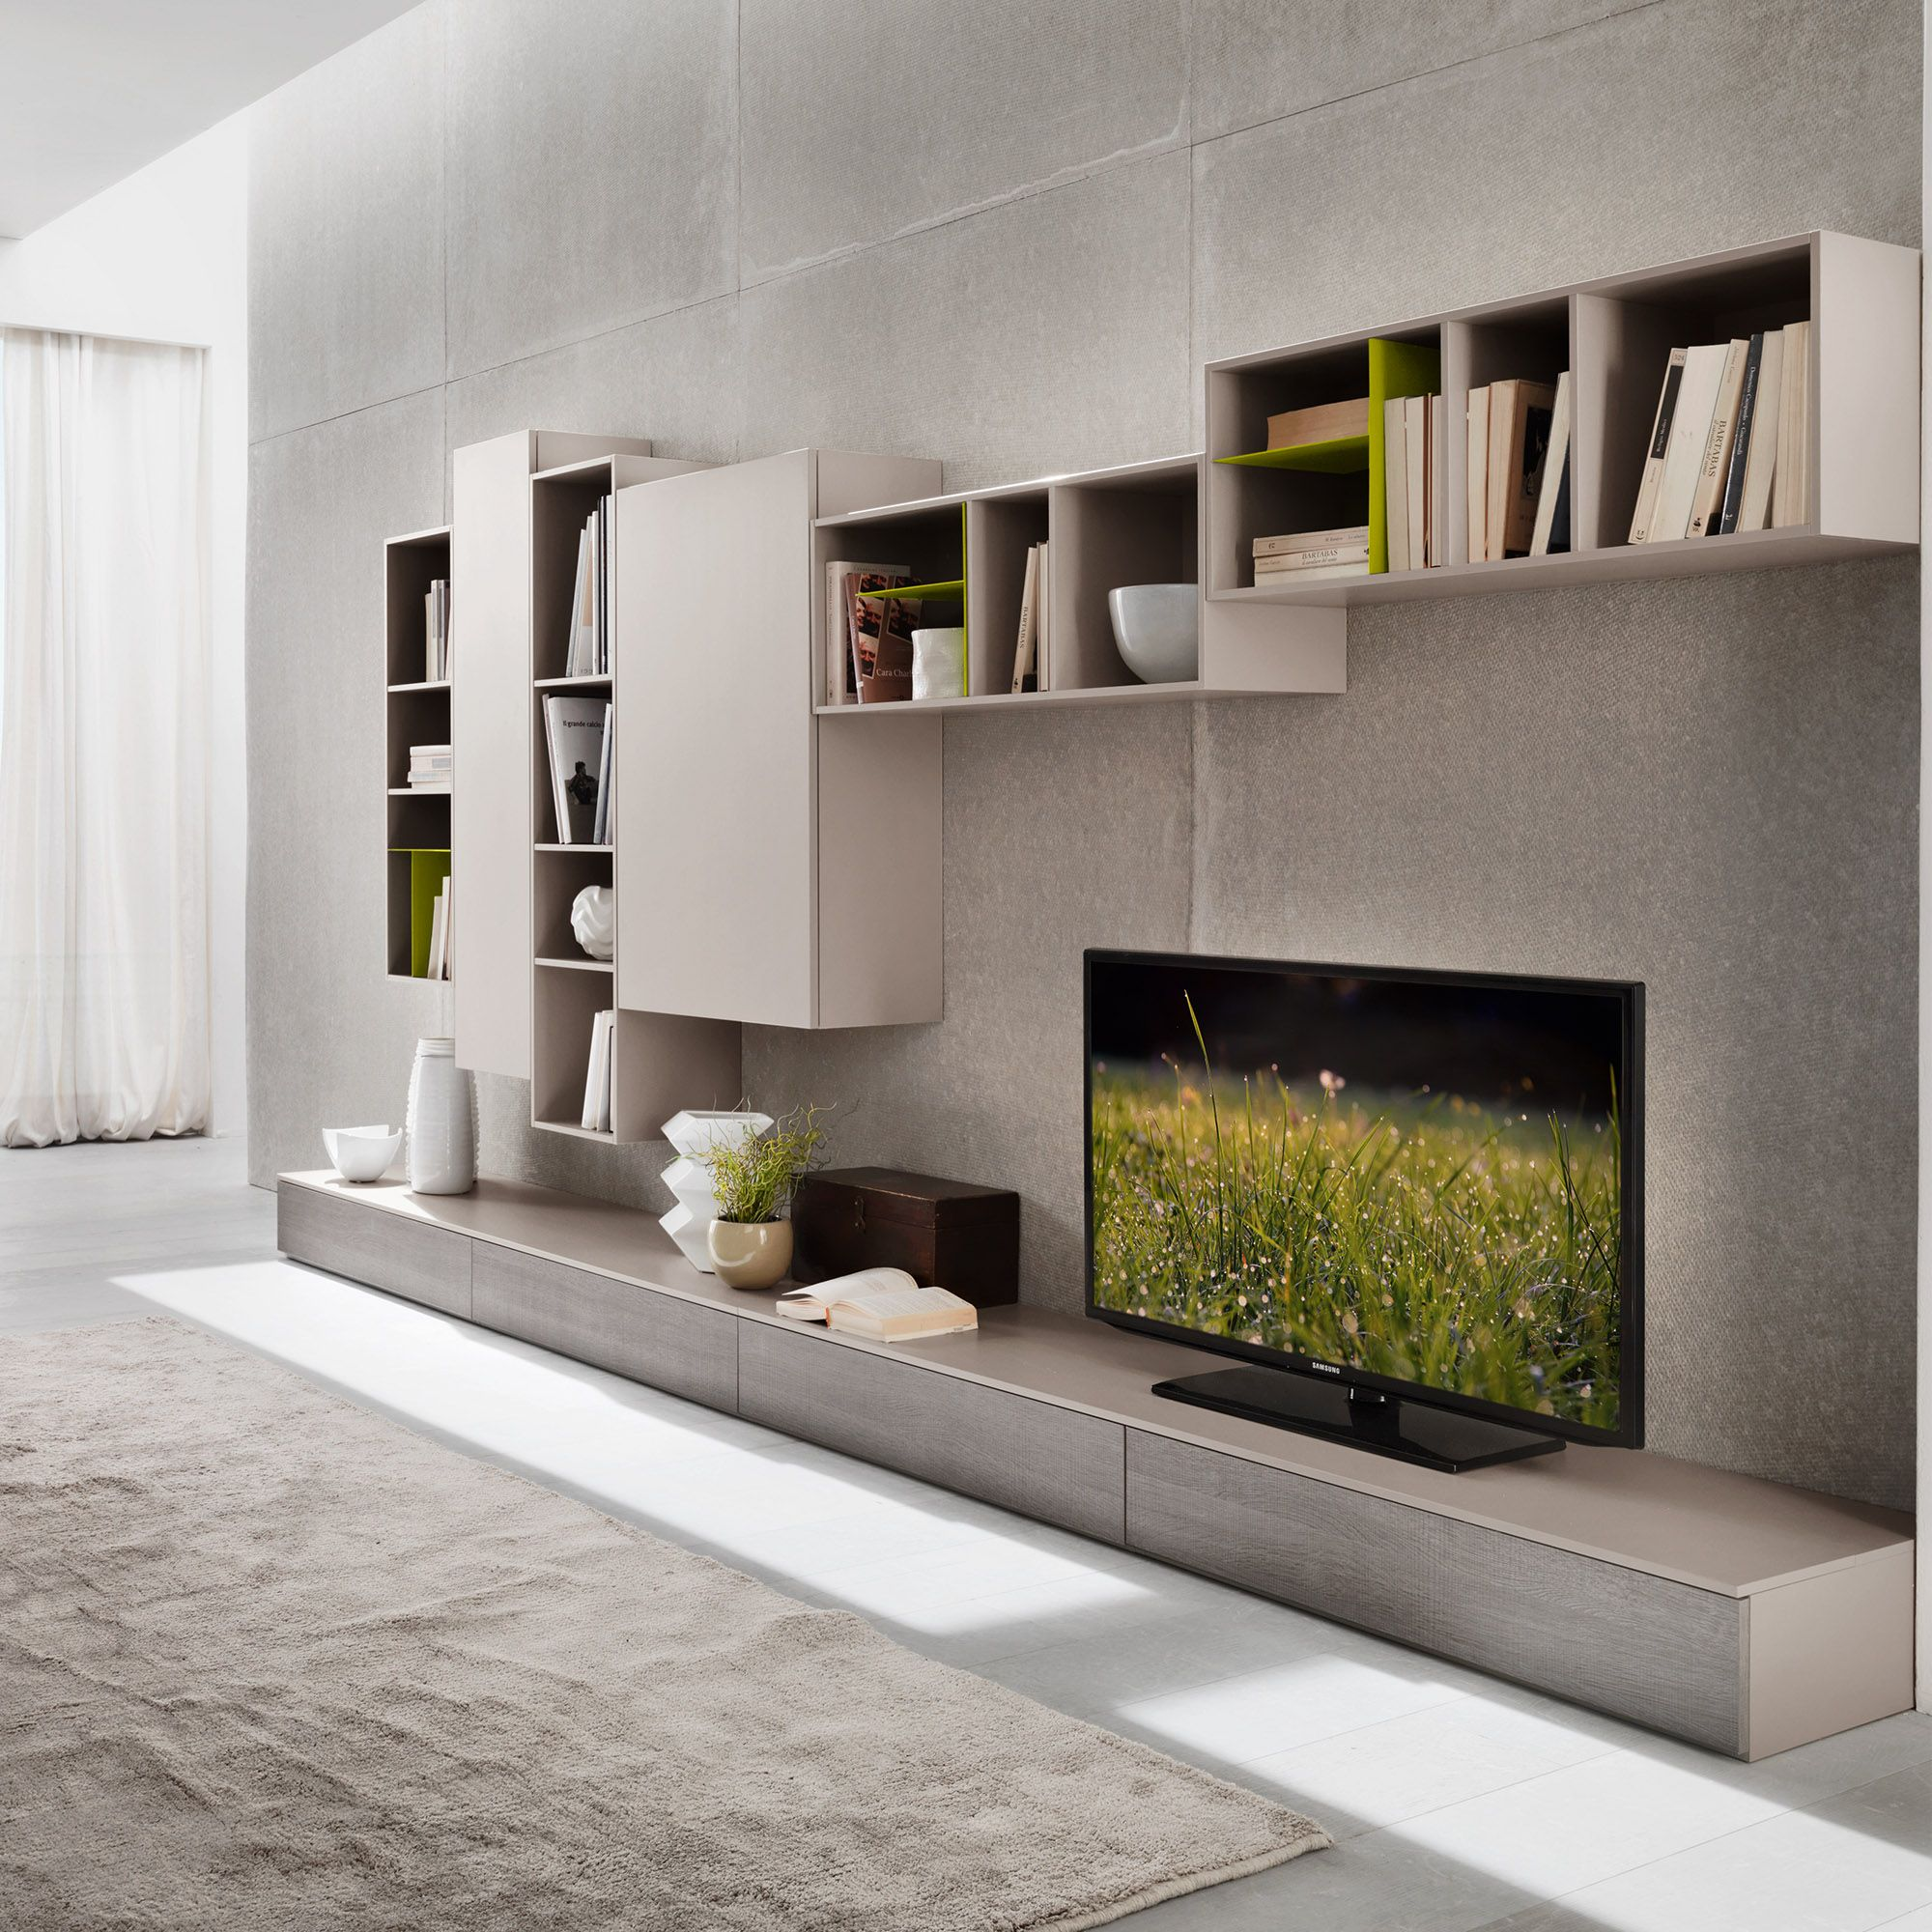 Living Area Cabinet Design: Modern Italian TV-unit Composition-09 By Siluetto